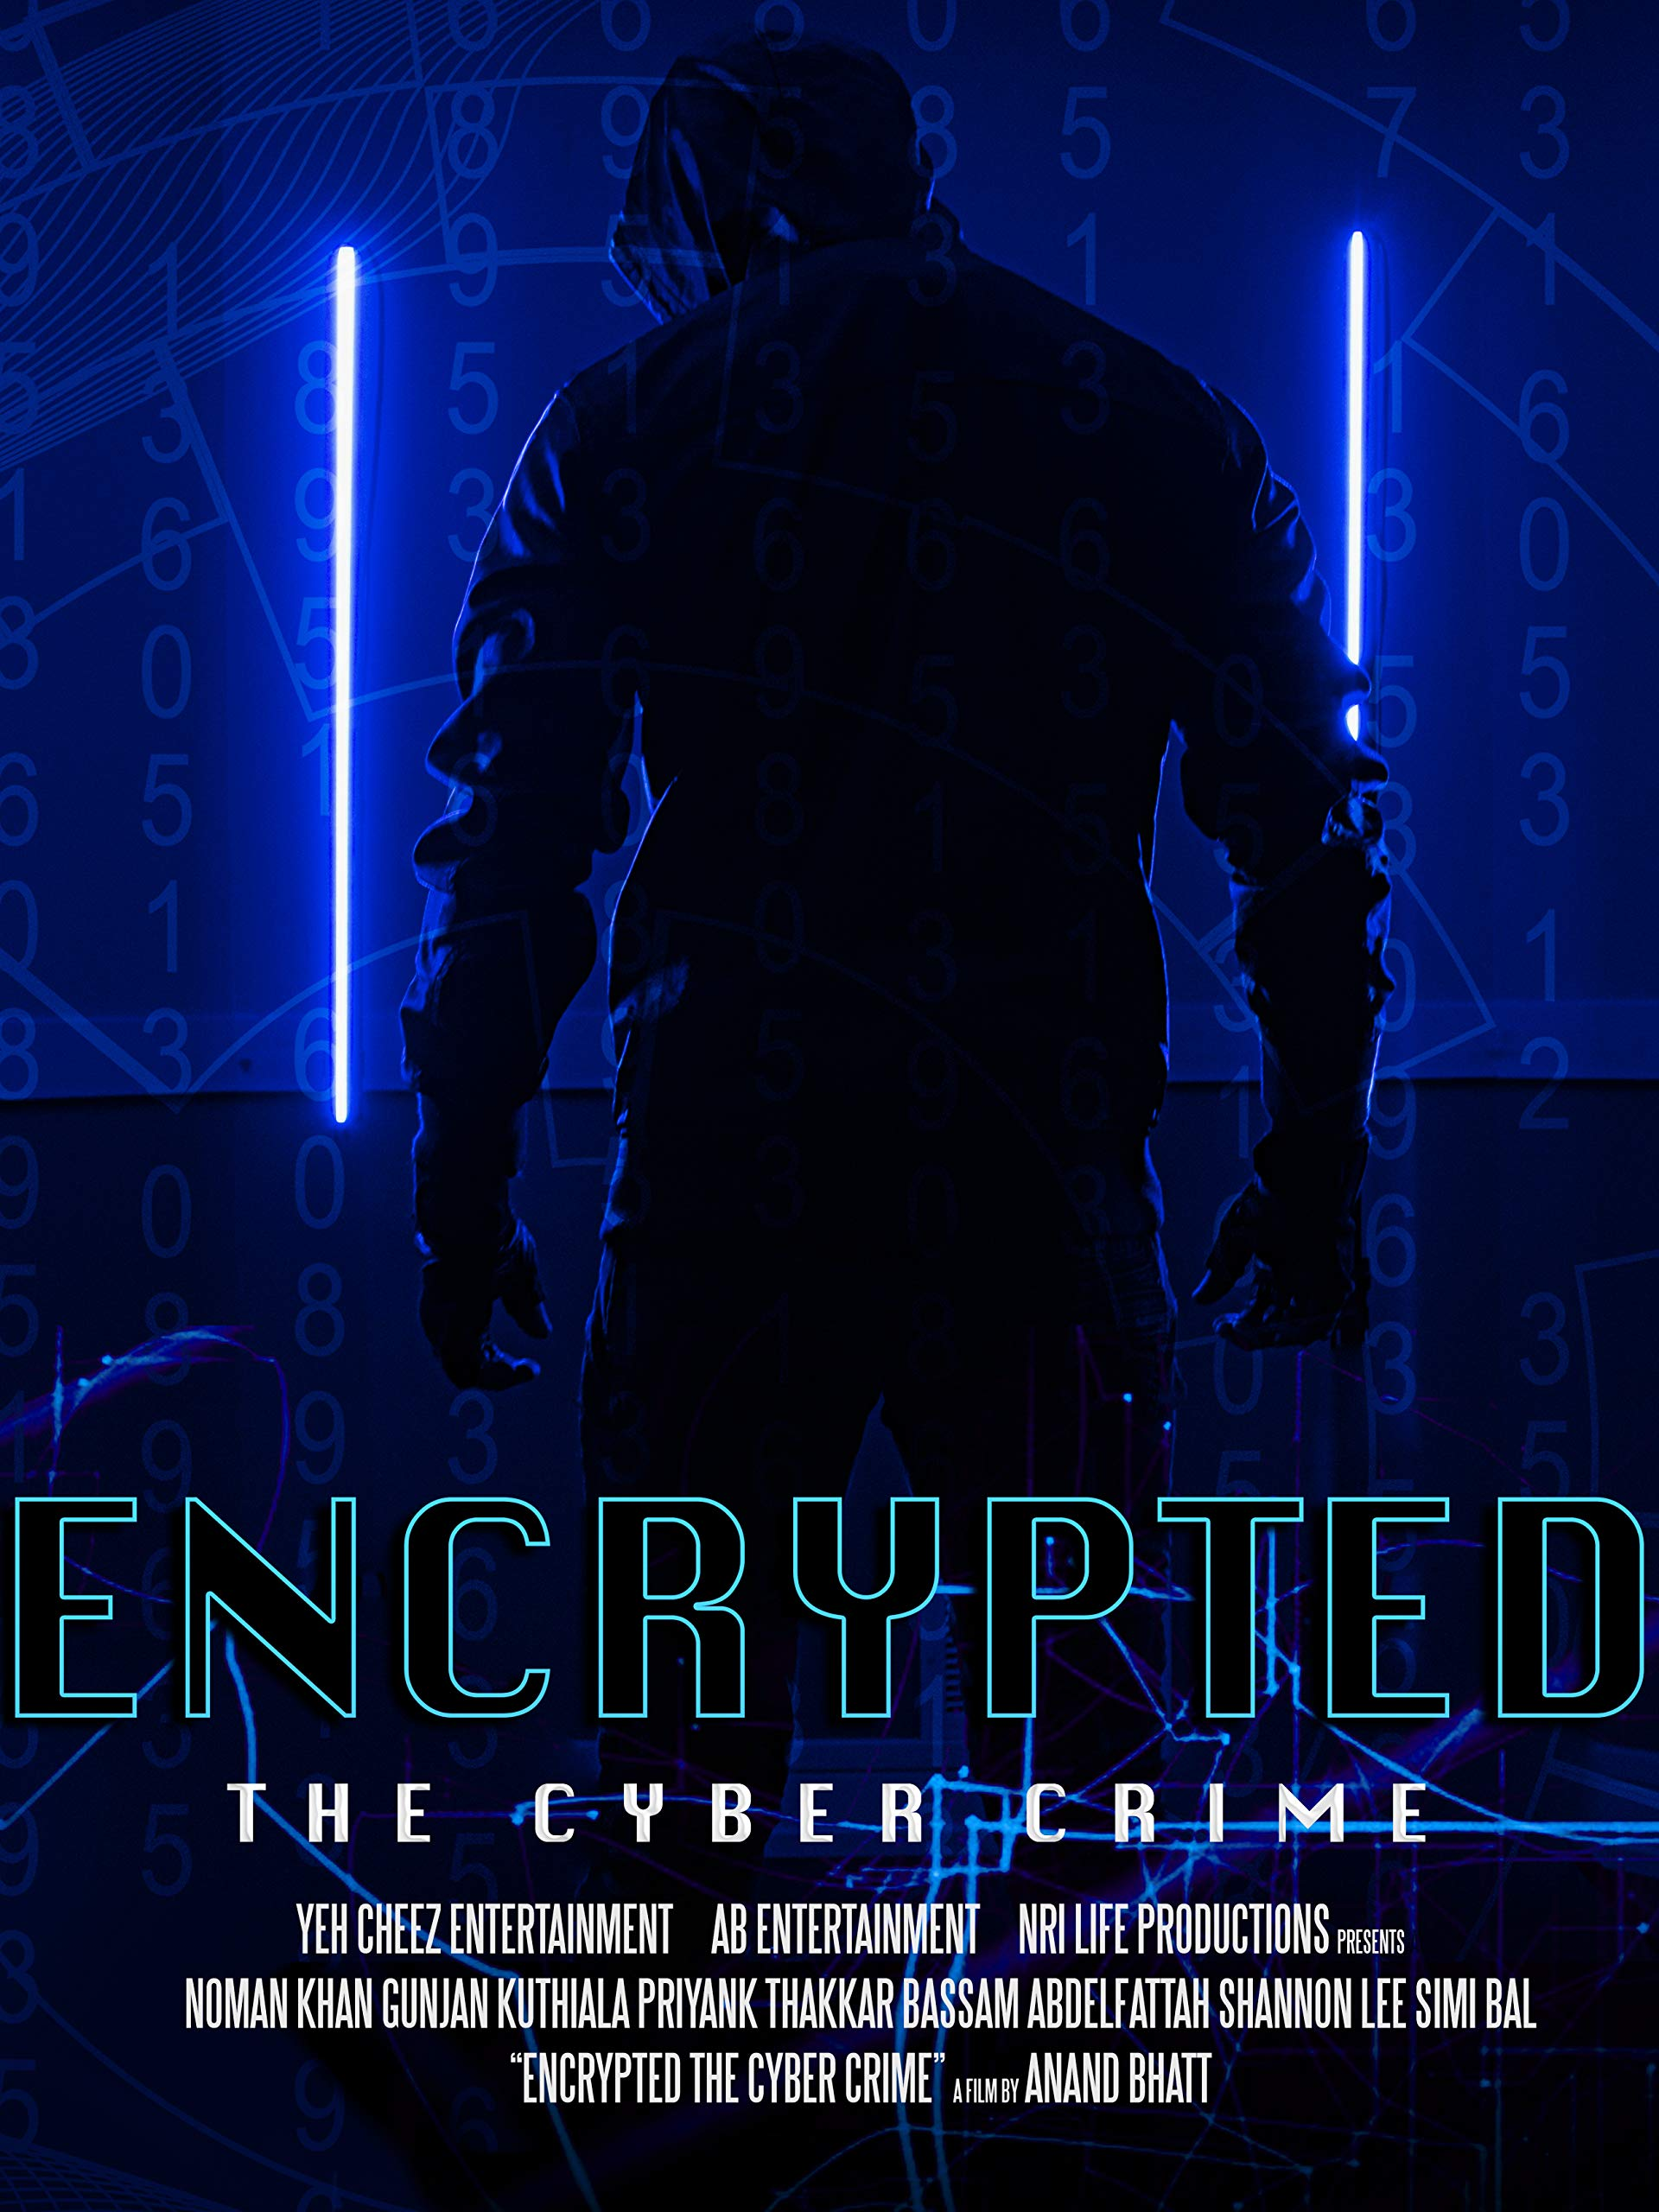 Encrypted - The Cyber Crime